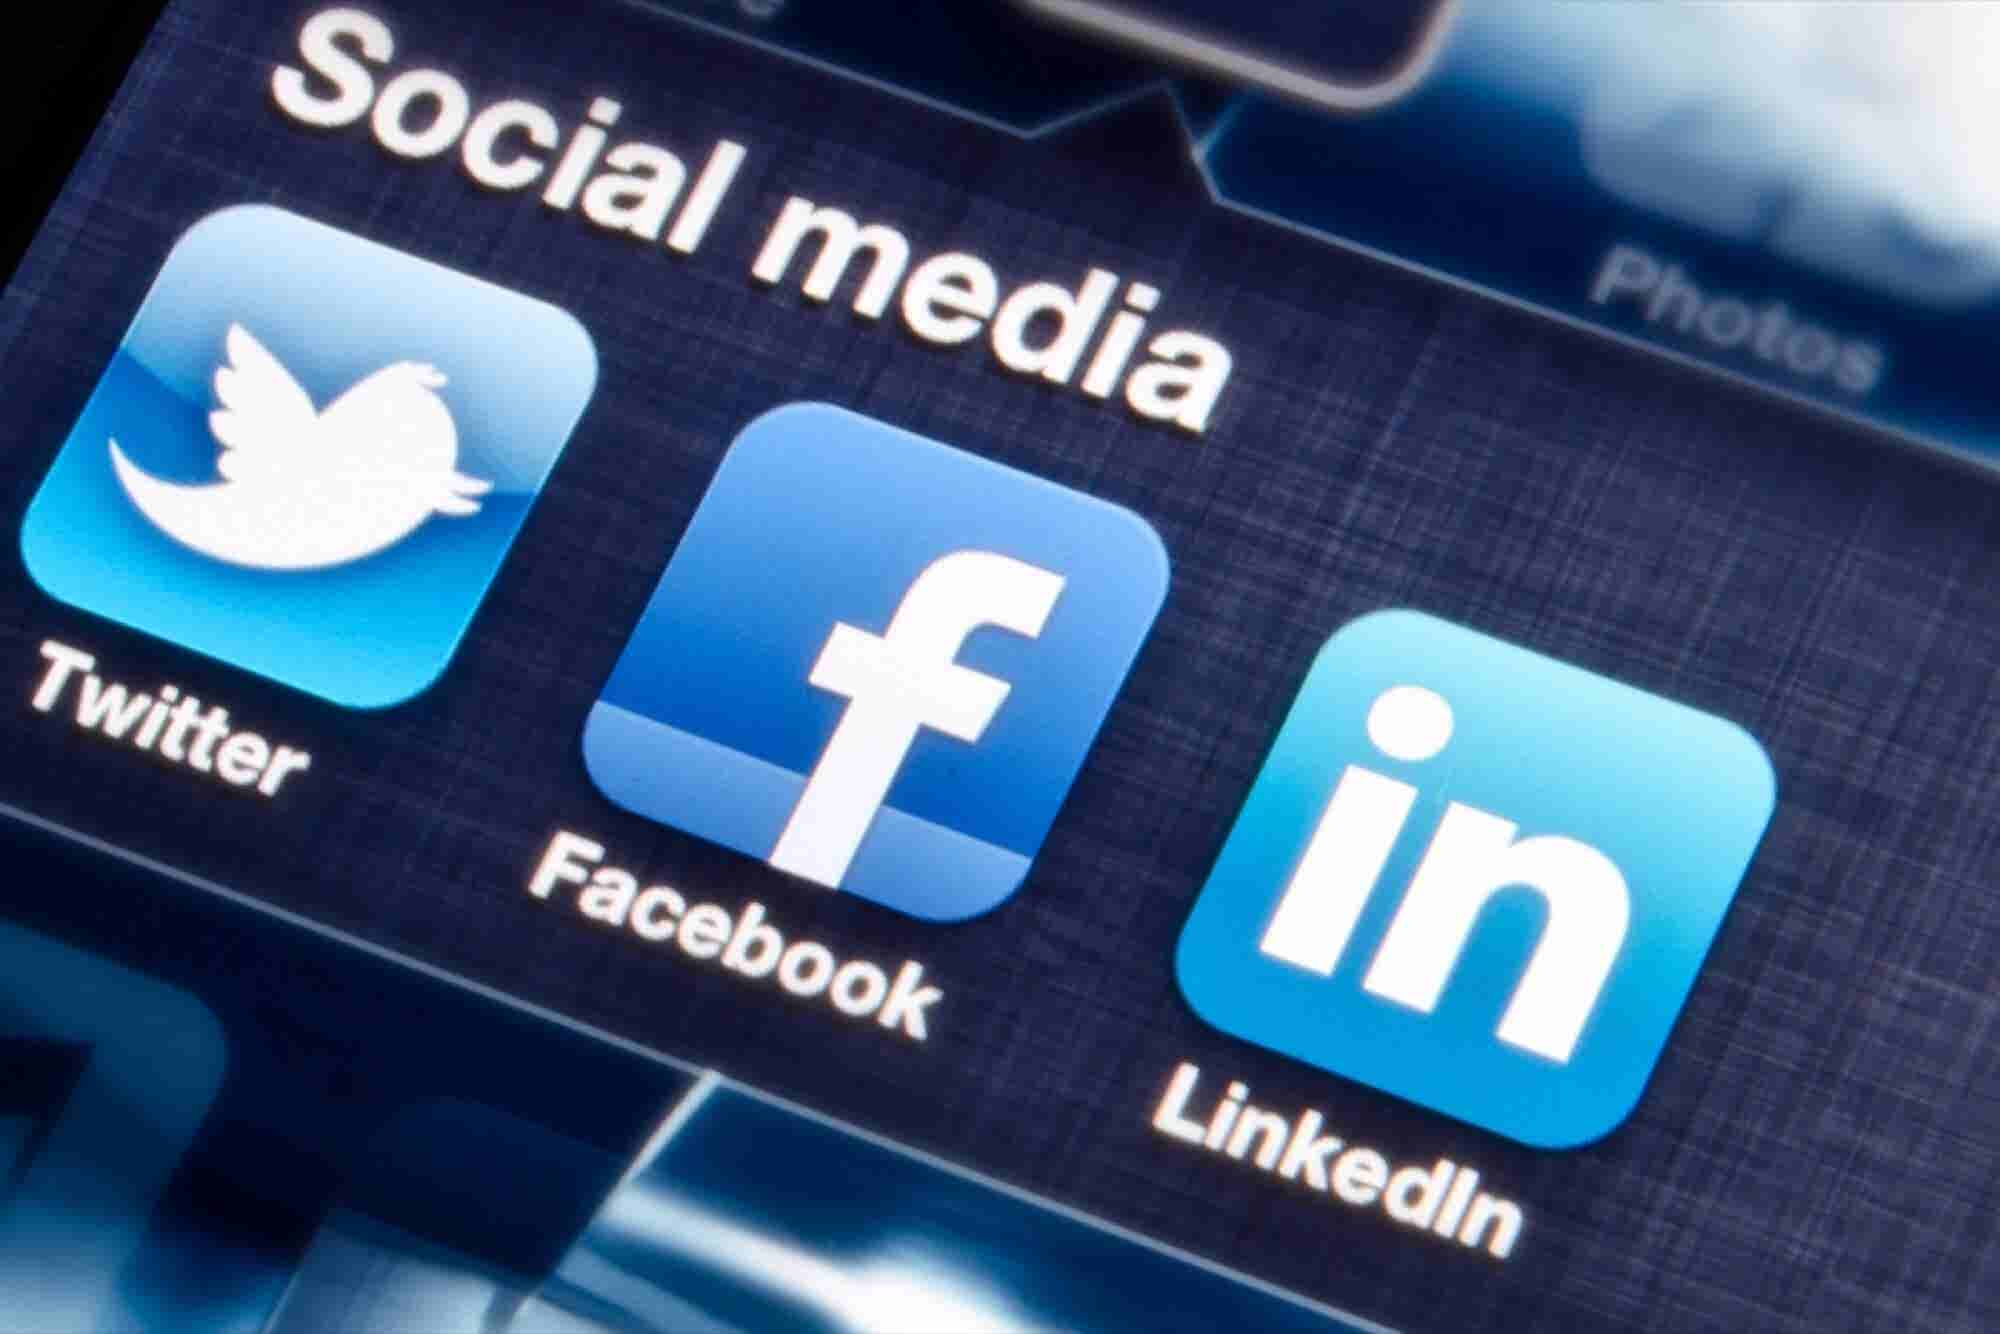 Social Media Marketing In The Digital Age